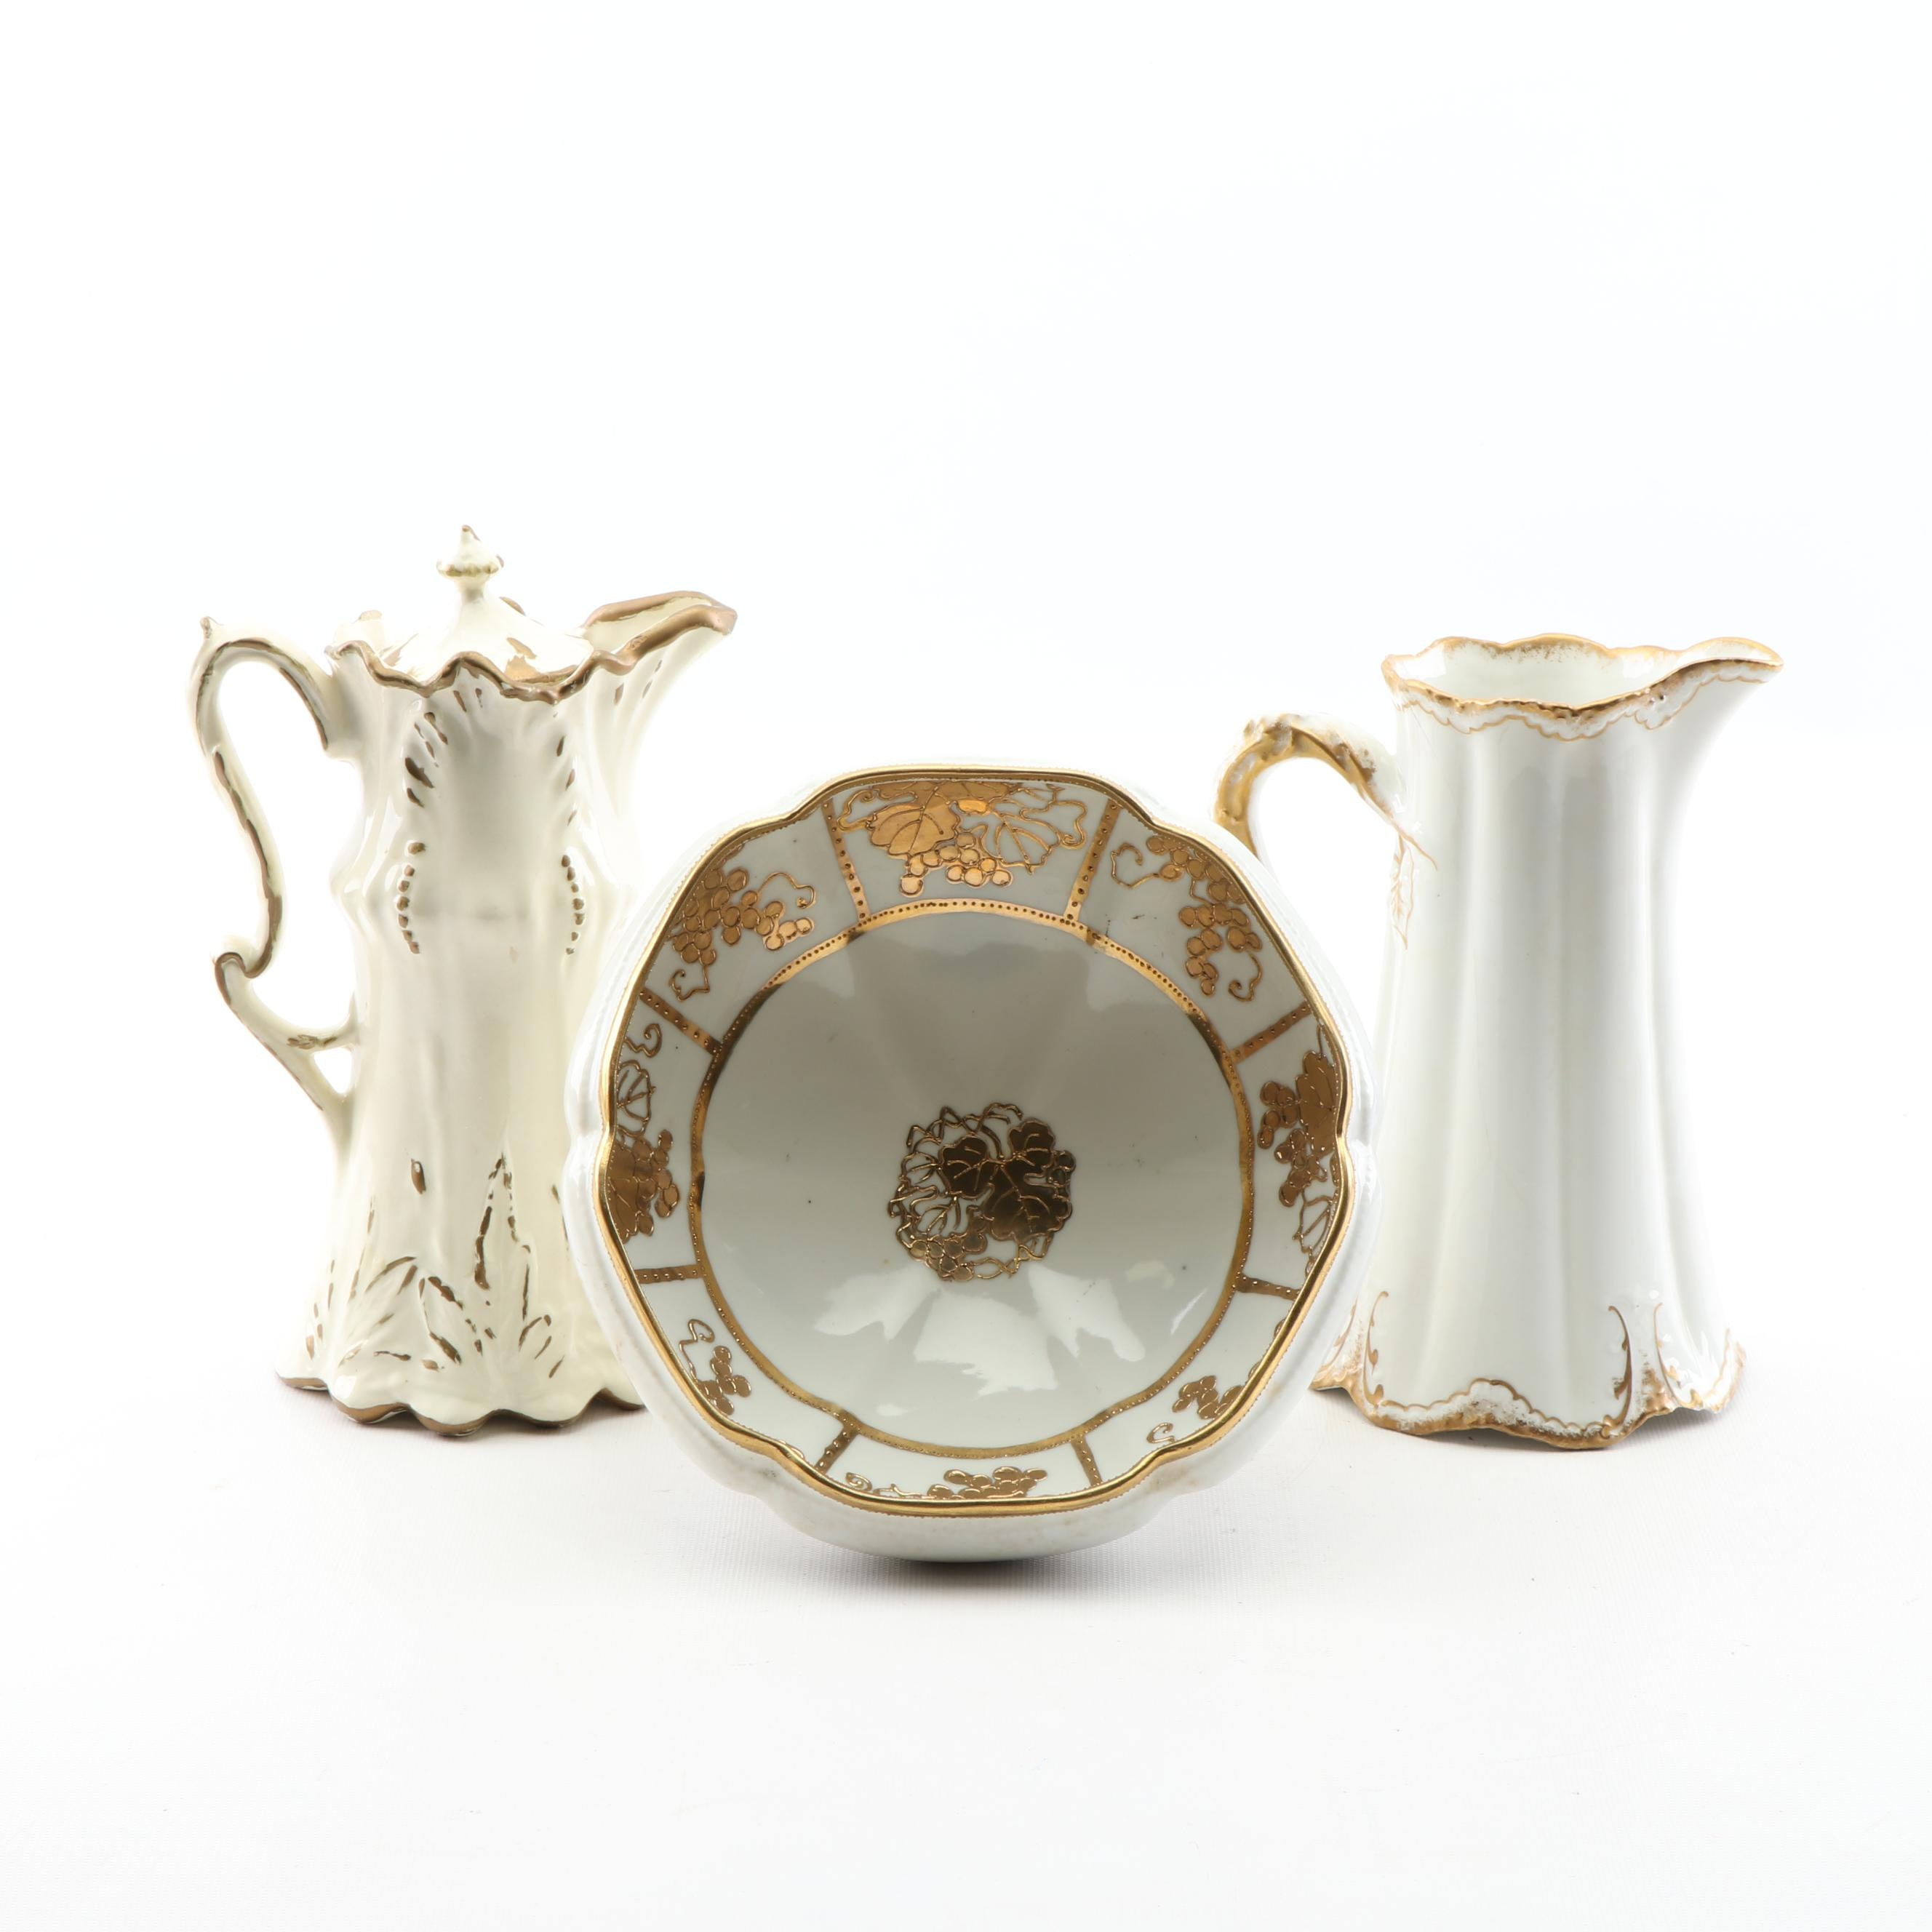 Porcelain Tableware including Noritake Nippon and Theodore Haviland